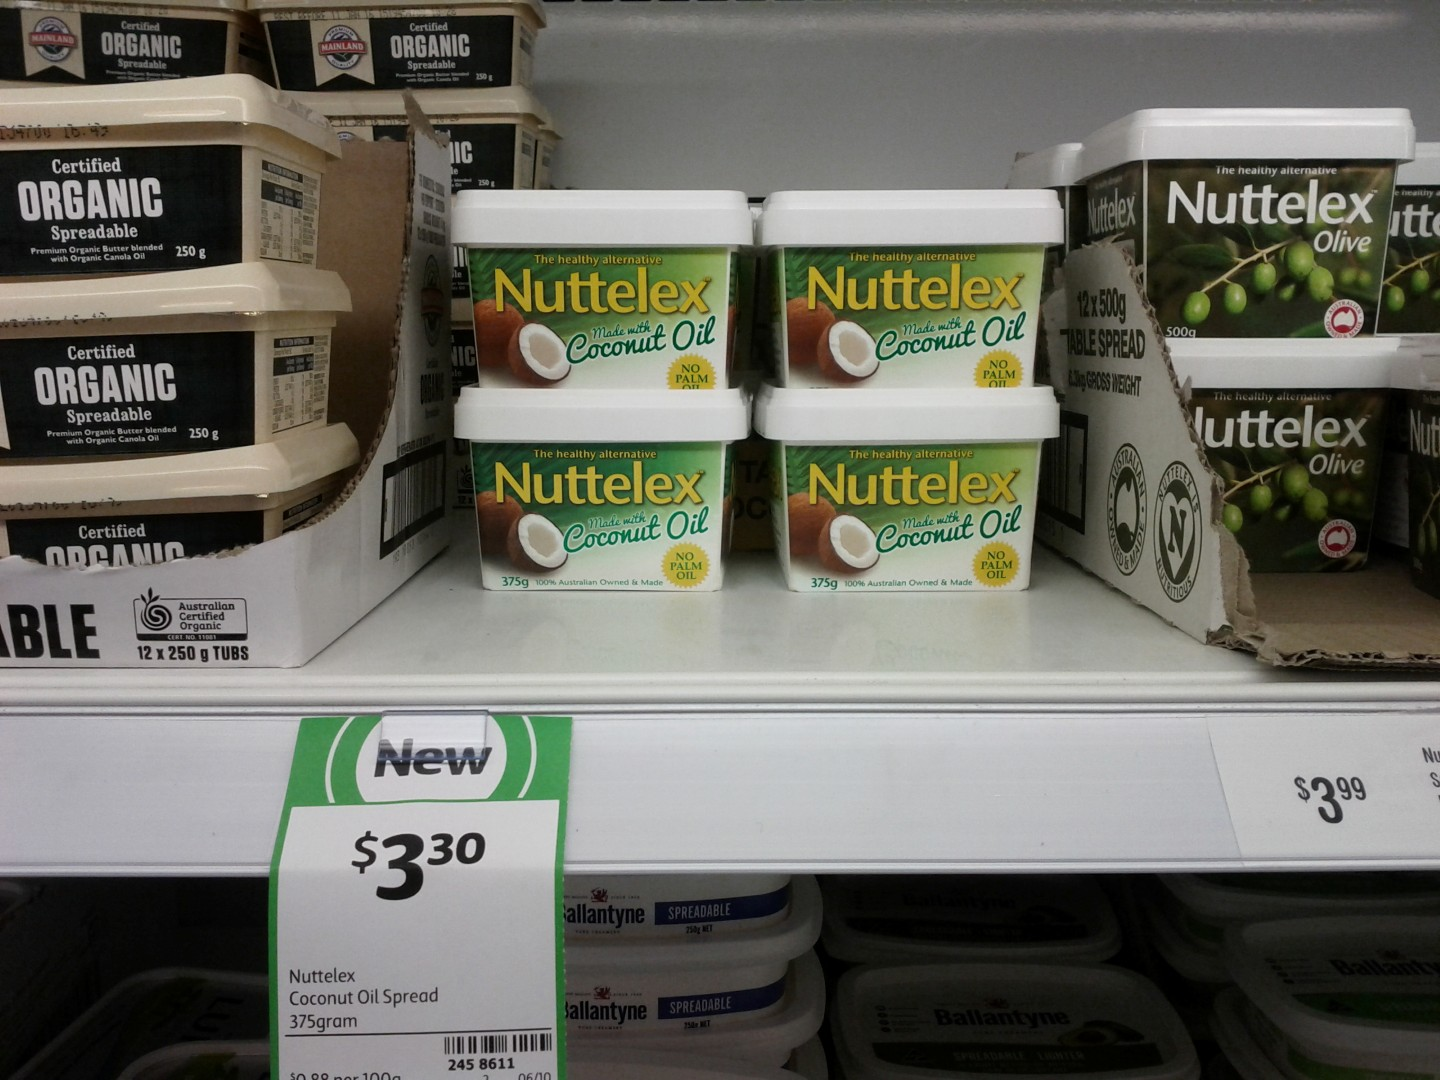 Nuttelex Spread 375g Coconut Oil